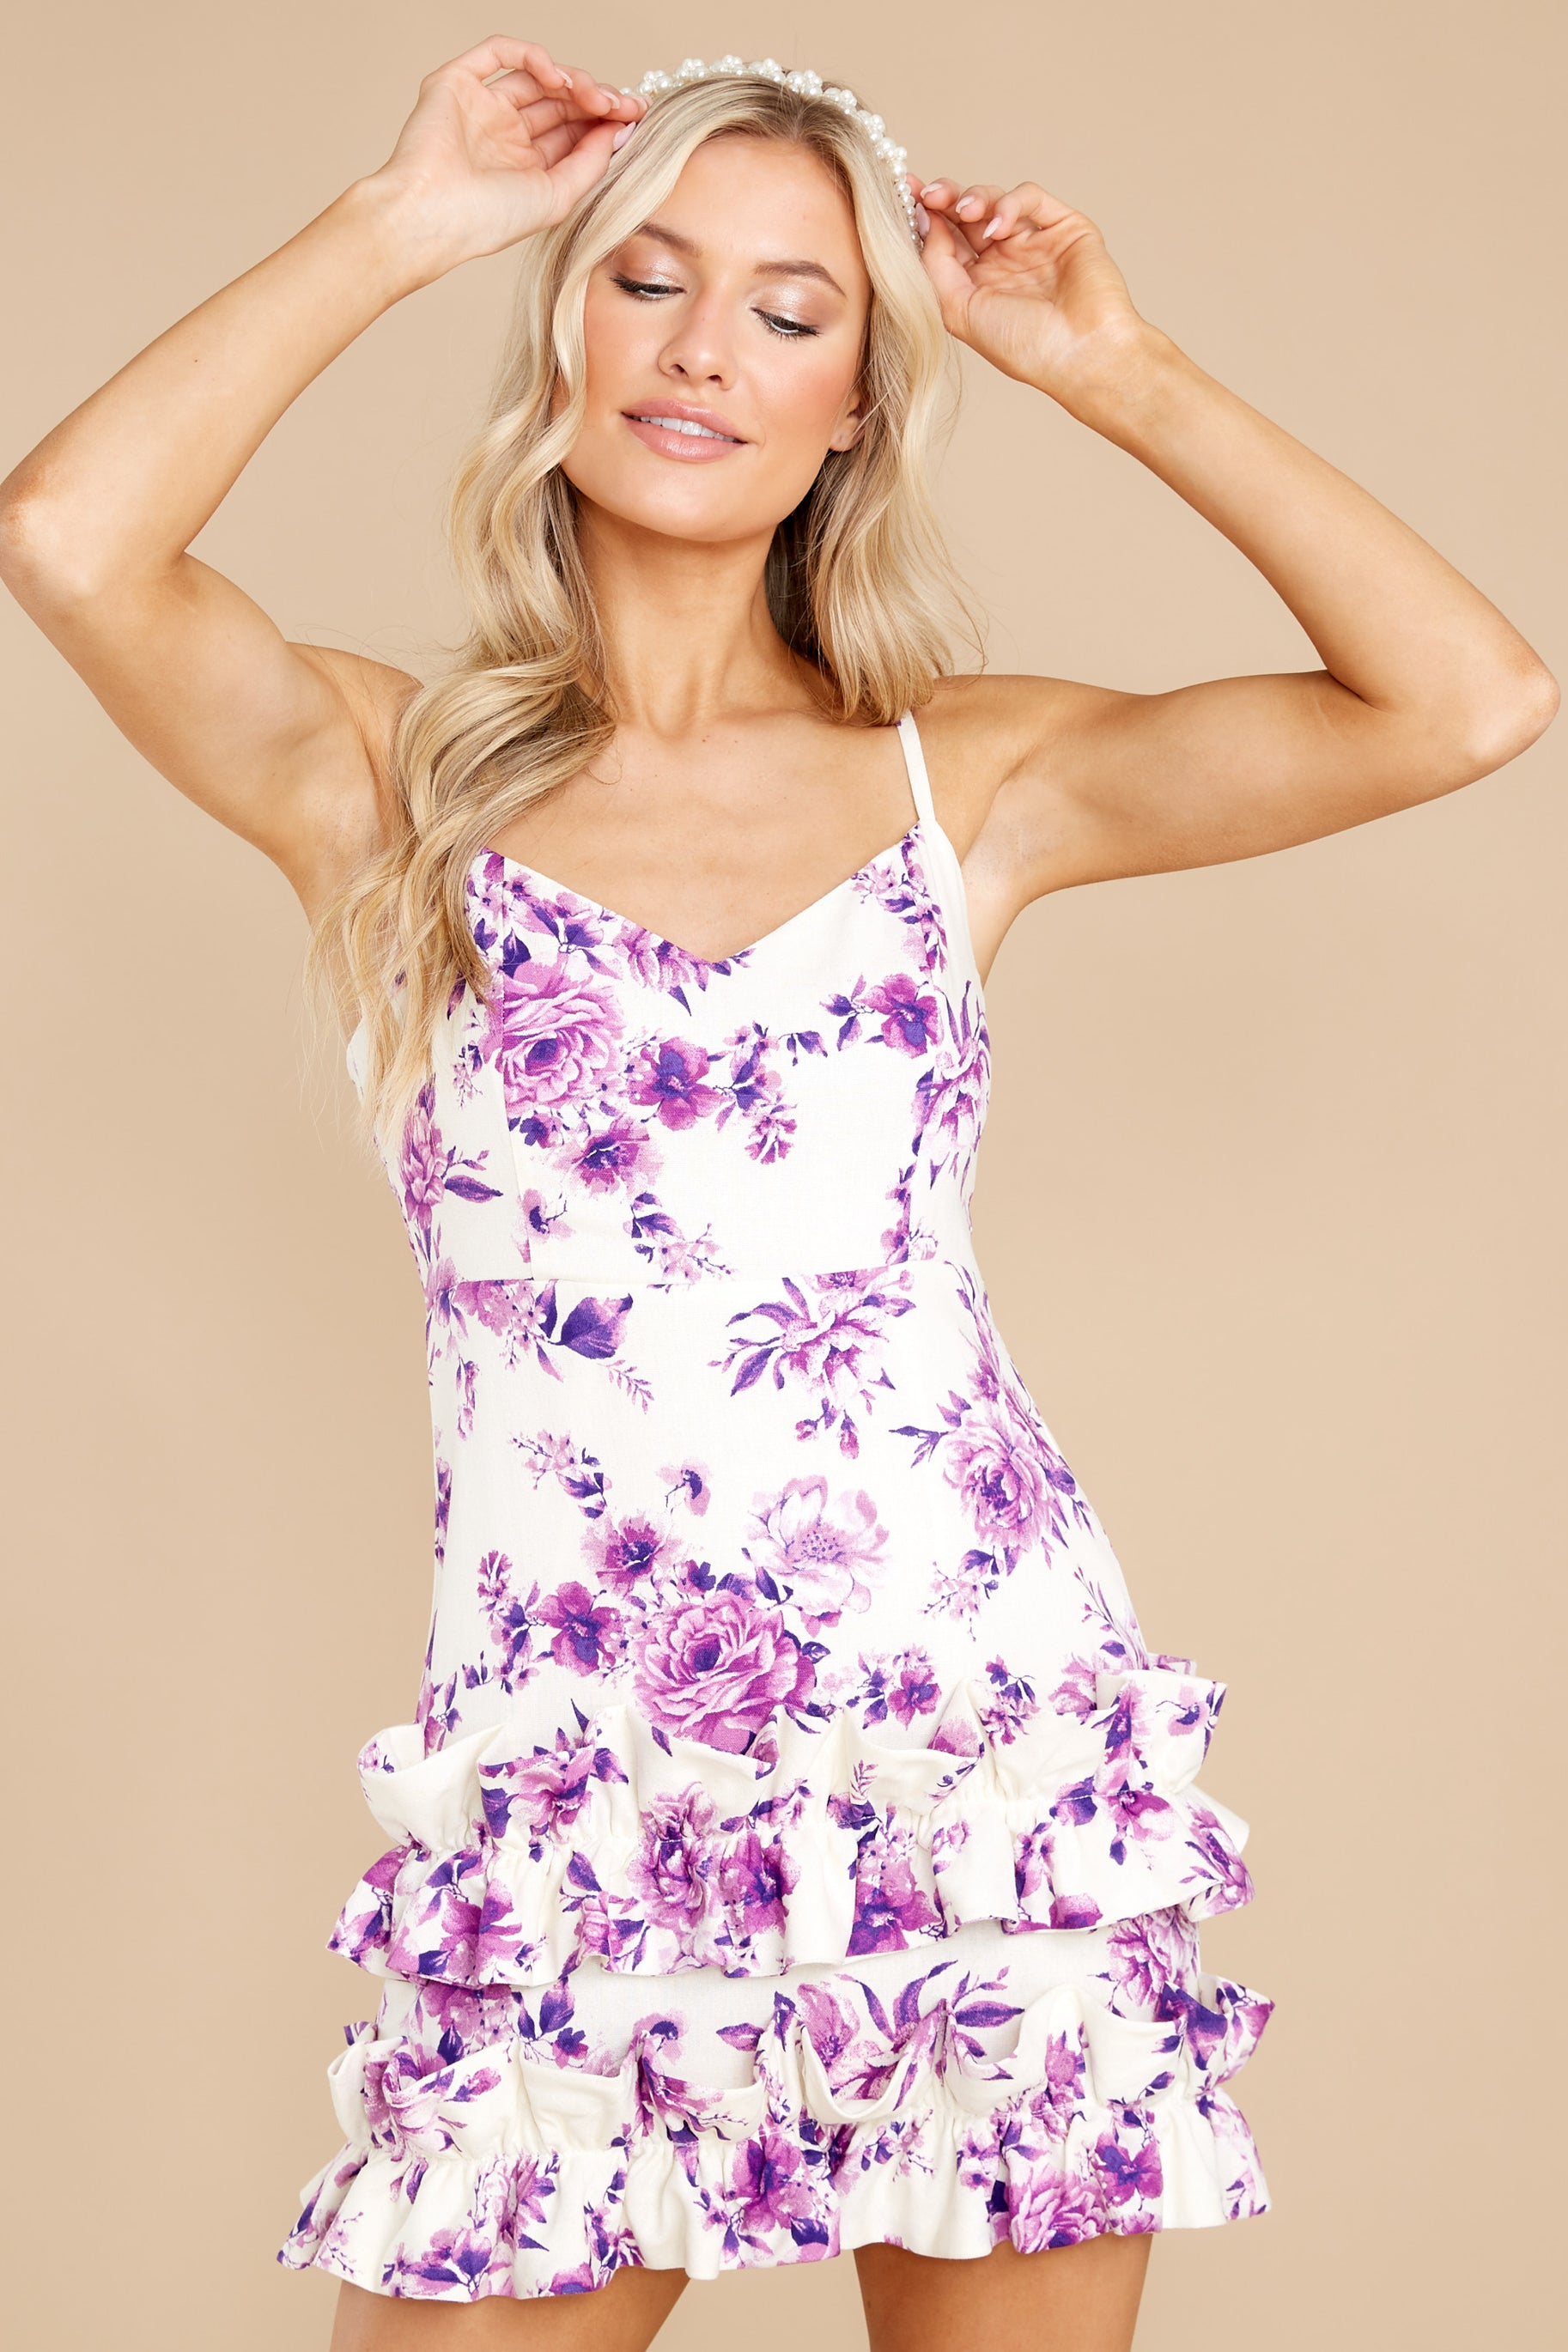 6 In Blossom White And Purple Floral Print Dress at reddress.com